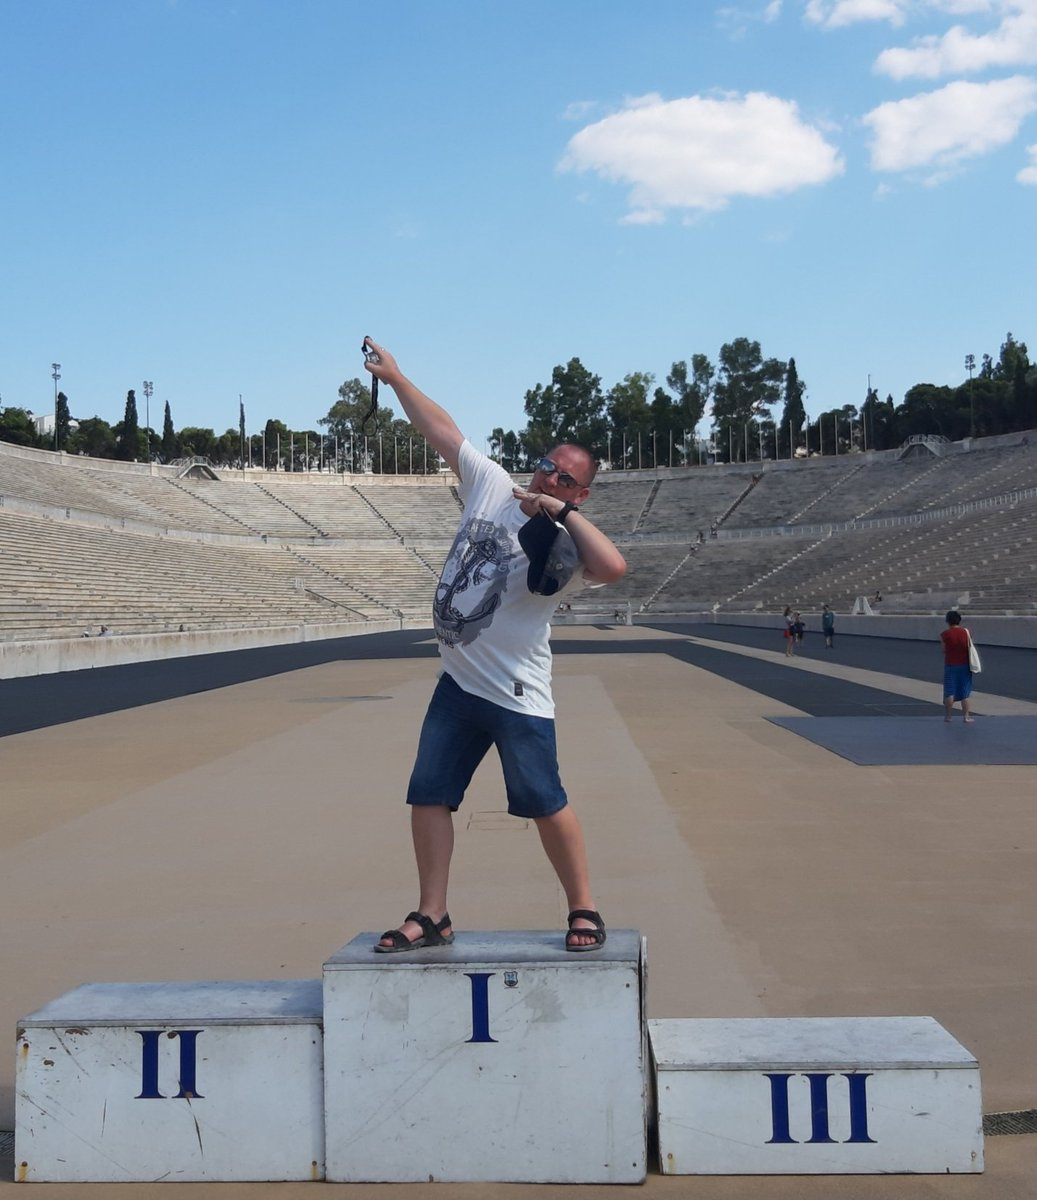 test Twitter Media - What have you done this holiday? Mr Ryan ran around the original Olympic Stadium in Athens. https://t.co/D3yYQ455Ur